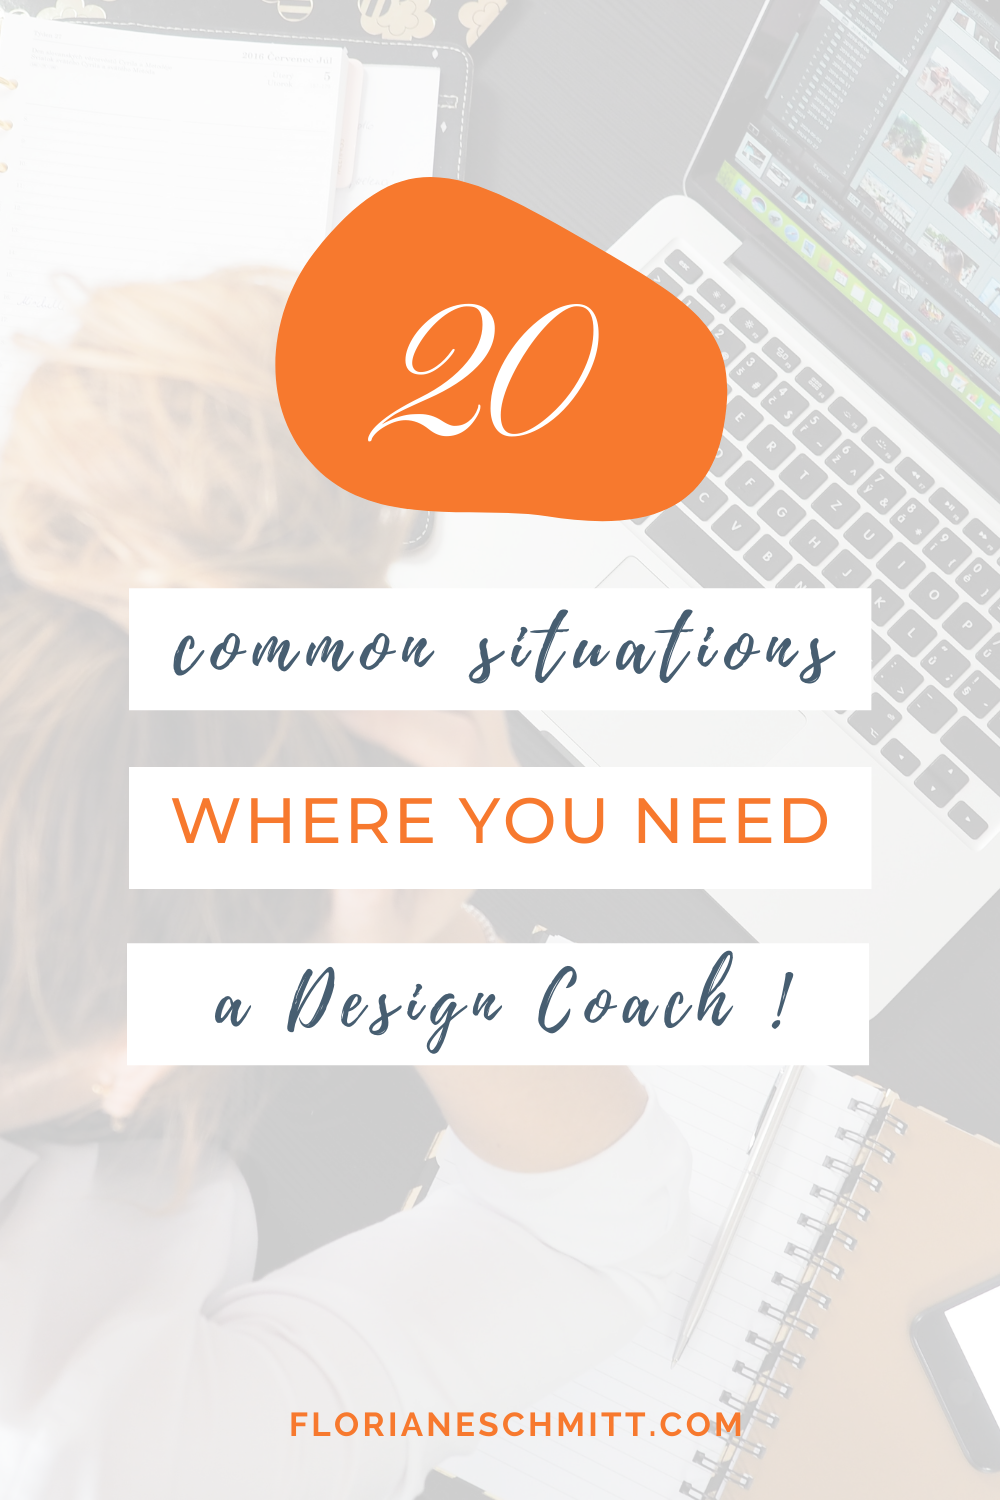 20 common situation where your need a design coach